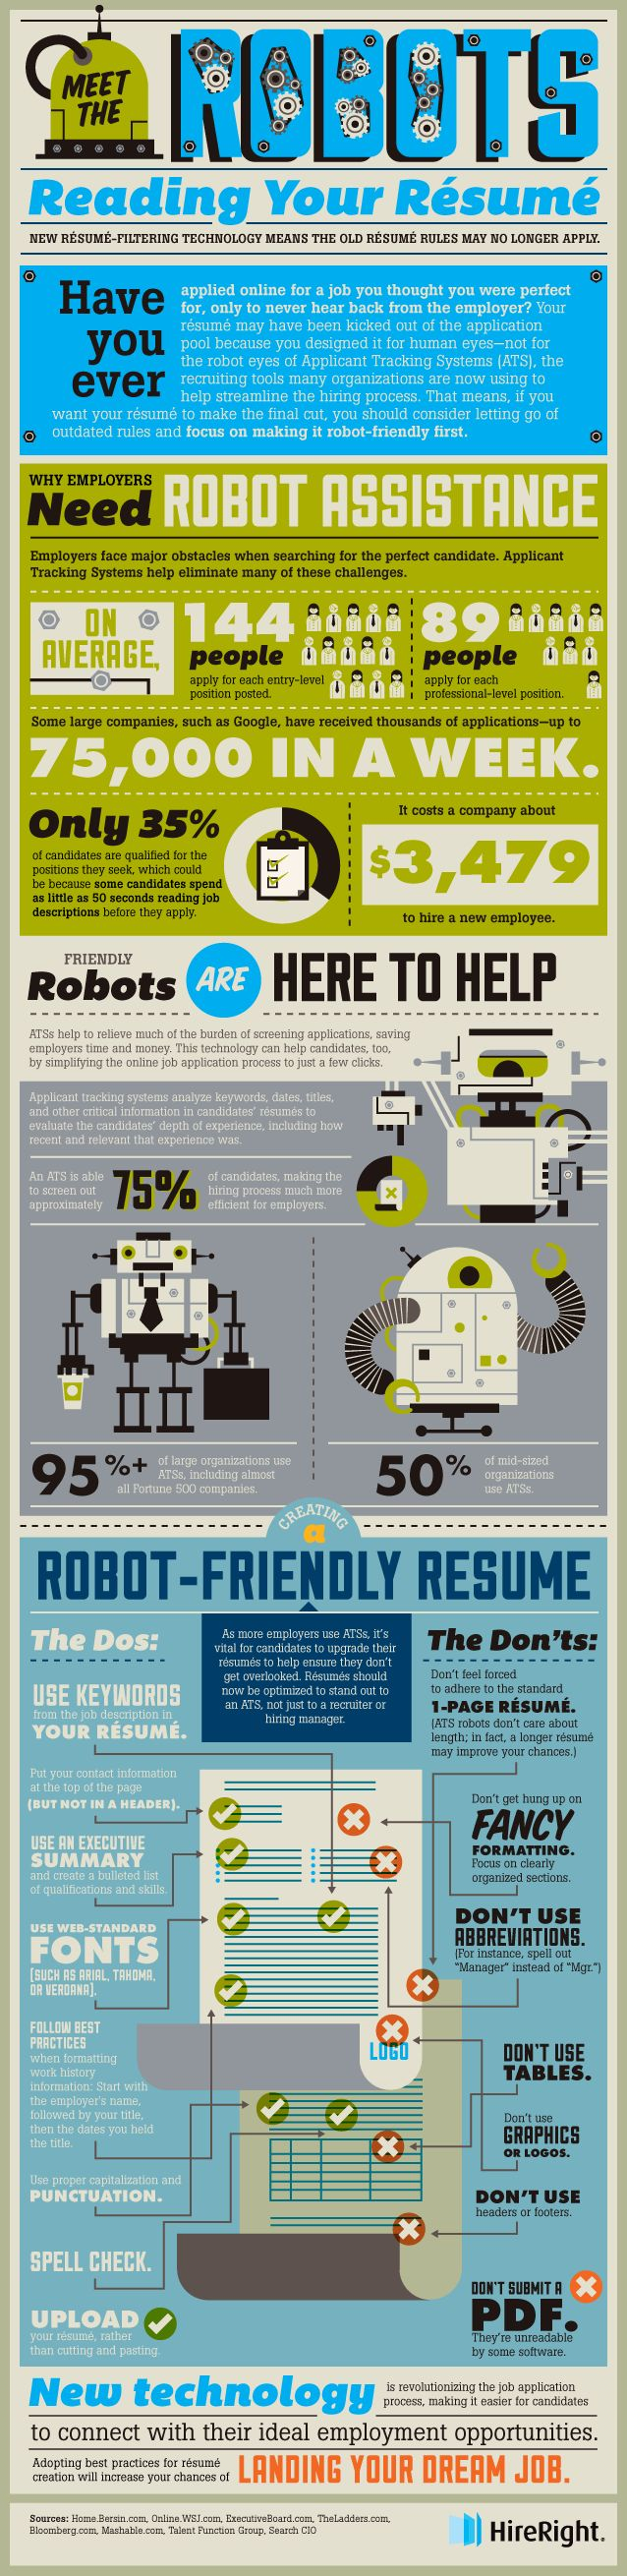 How To Create A Robot-Freindly Resume. Infographic